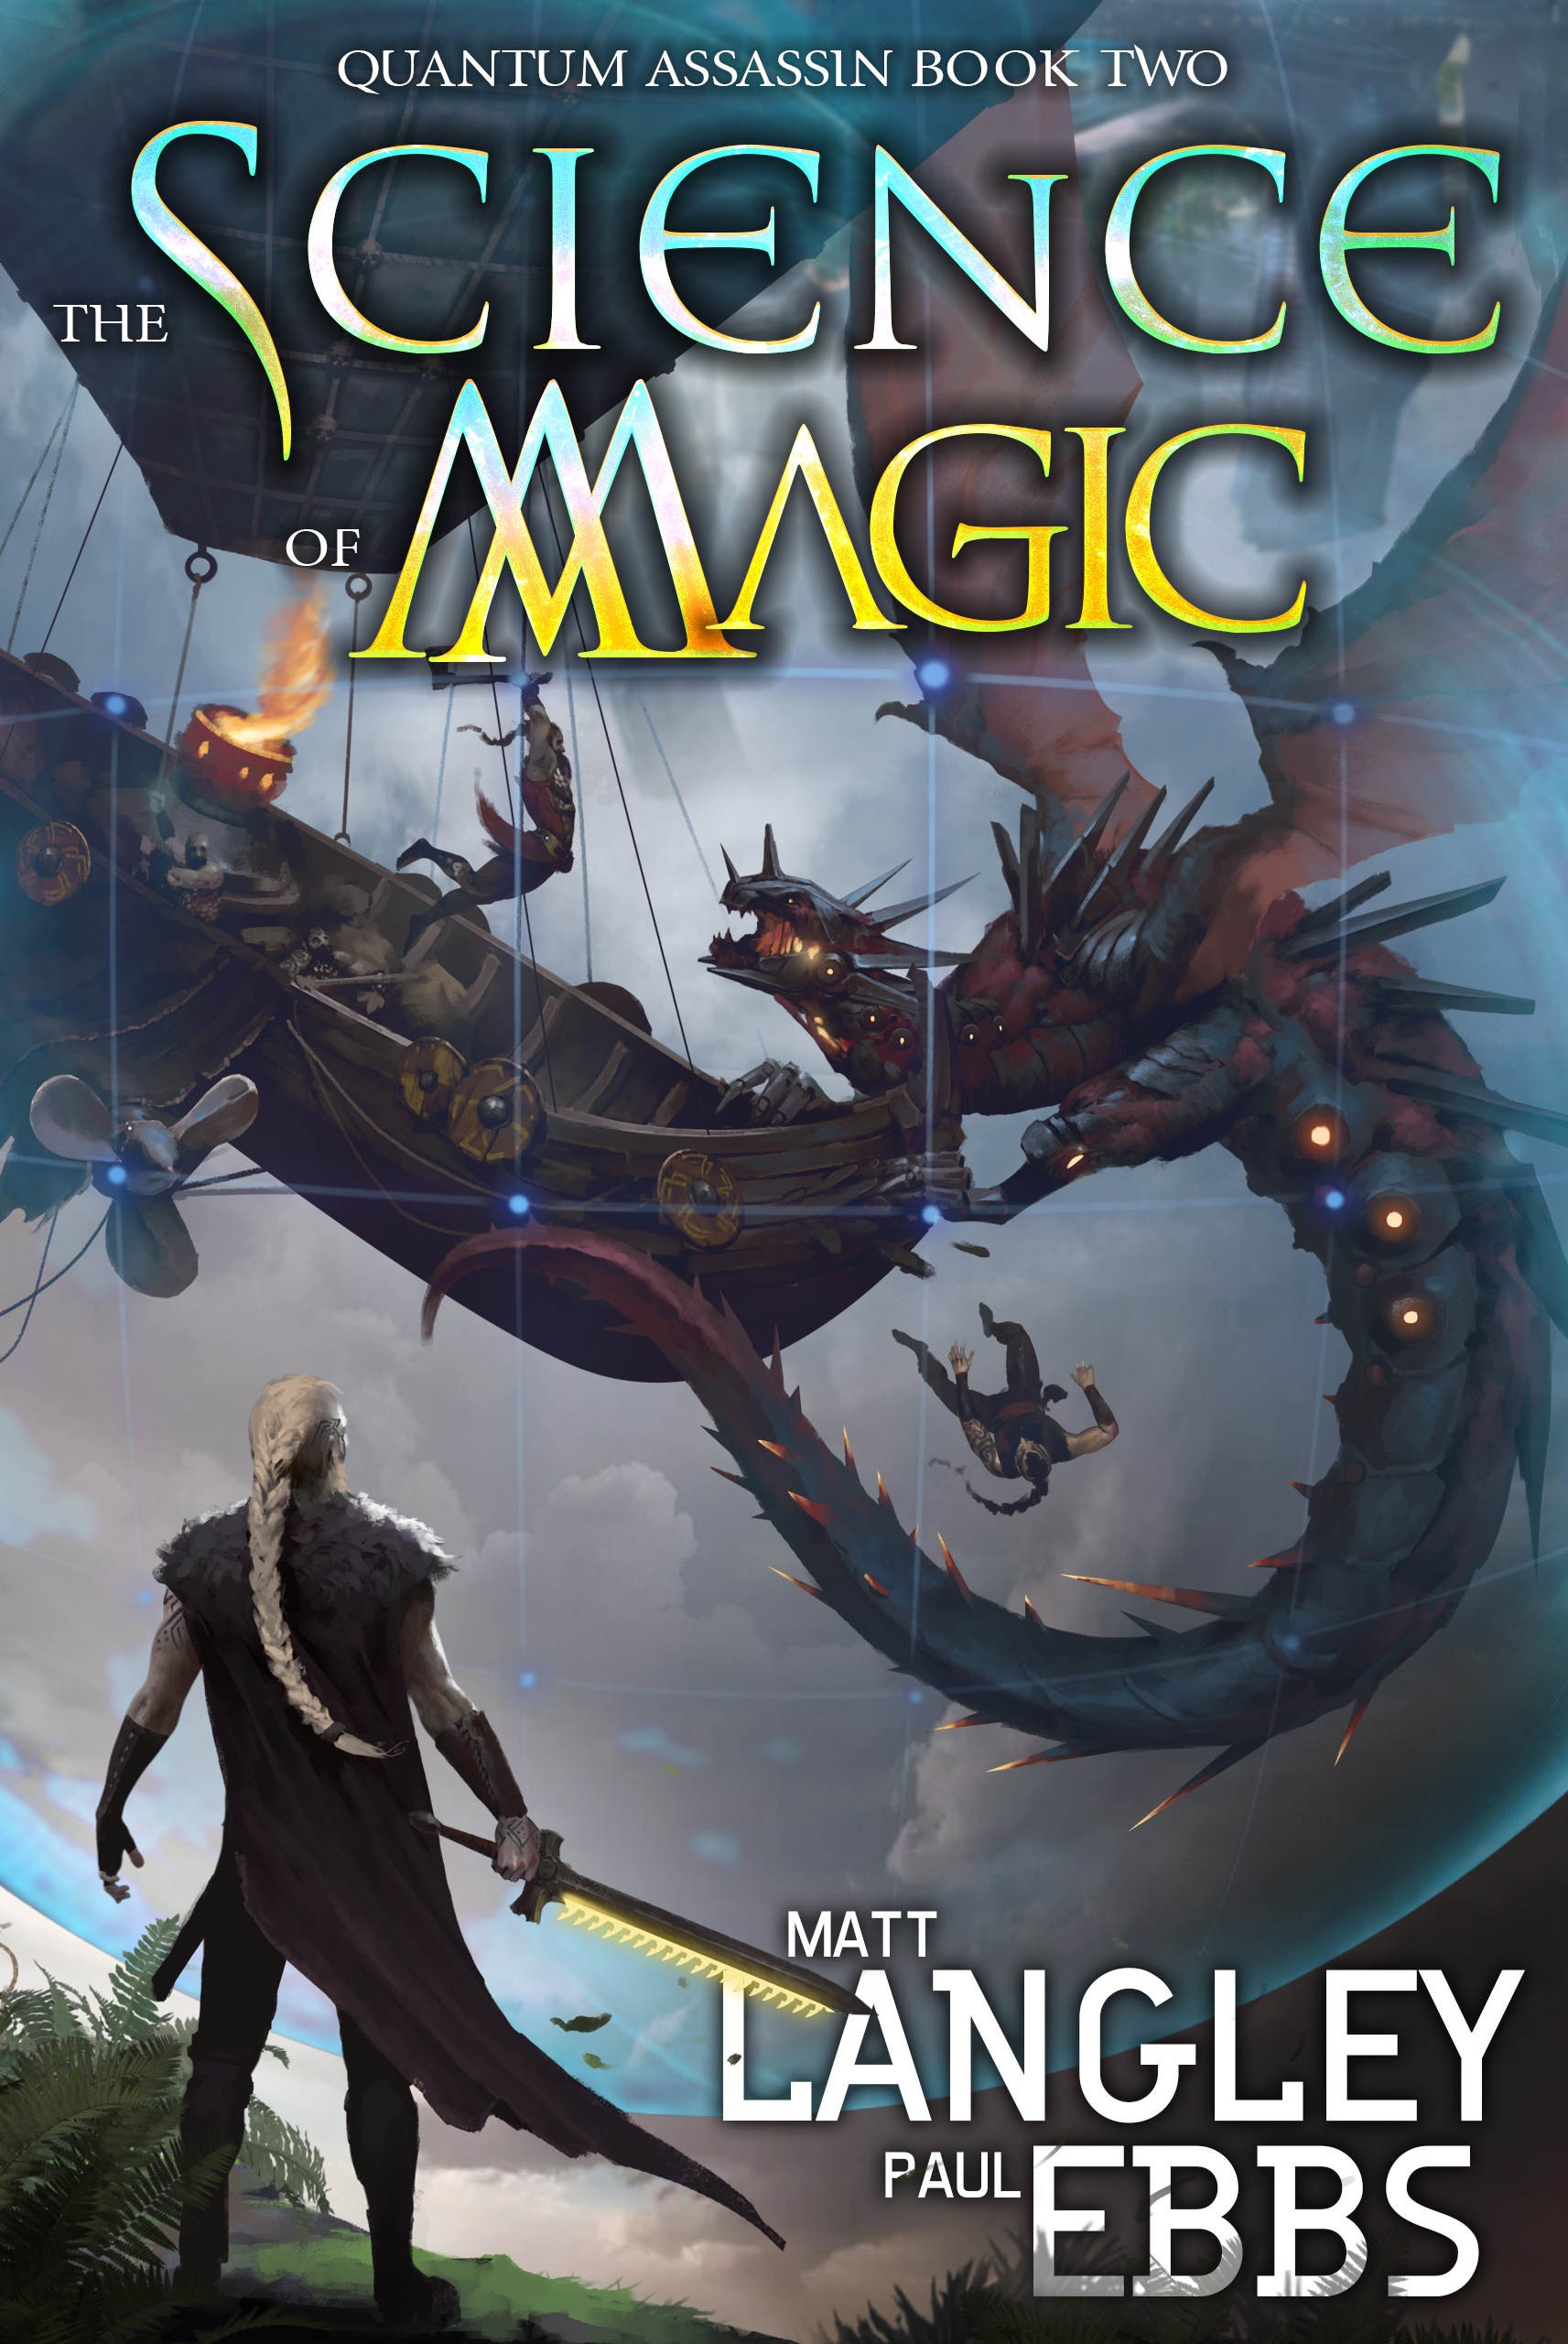 The Science of Magic   Quantum Assassin Book 2  Matt Langley, Paul Ebs